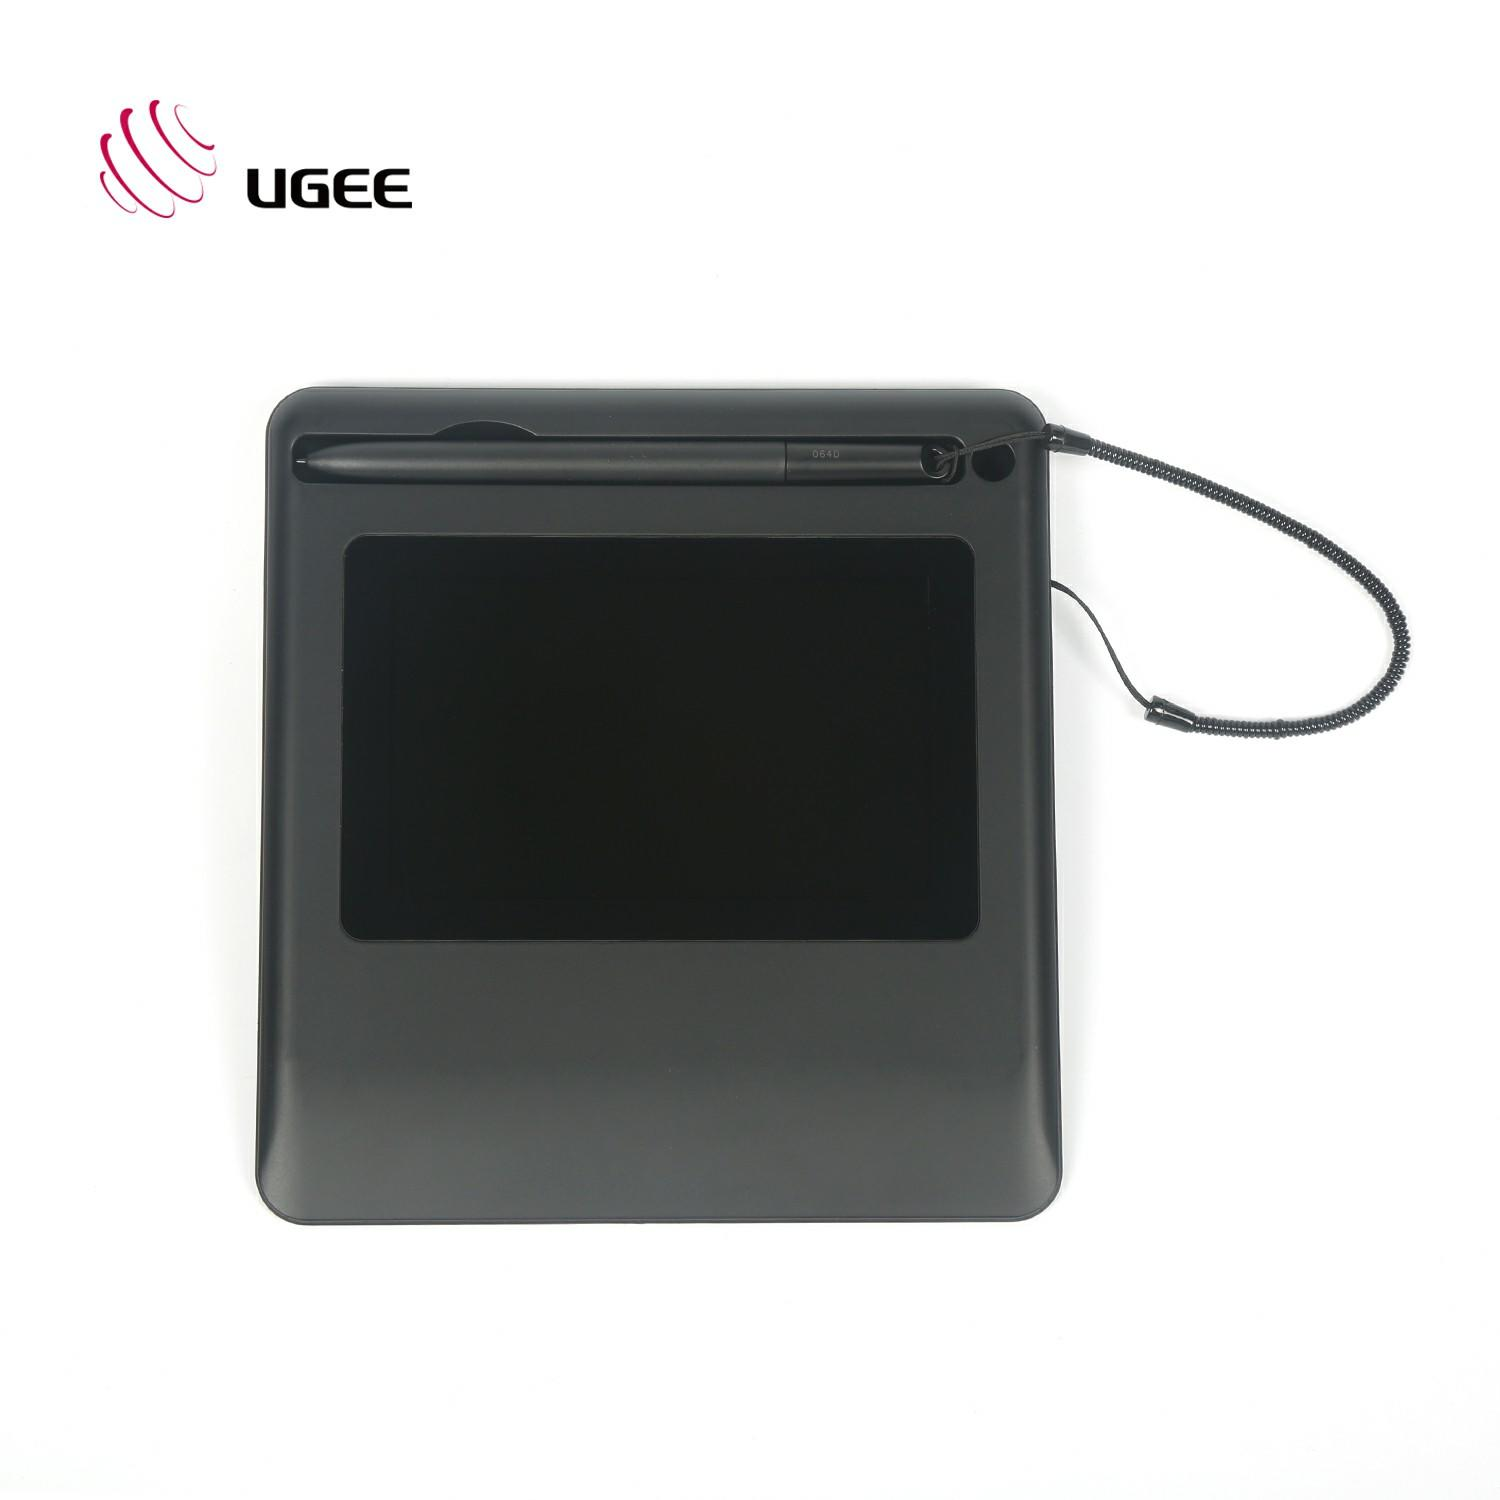 Ugee-Android Graphic Handwriting Tablet Usb Ugee Company | Factory